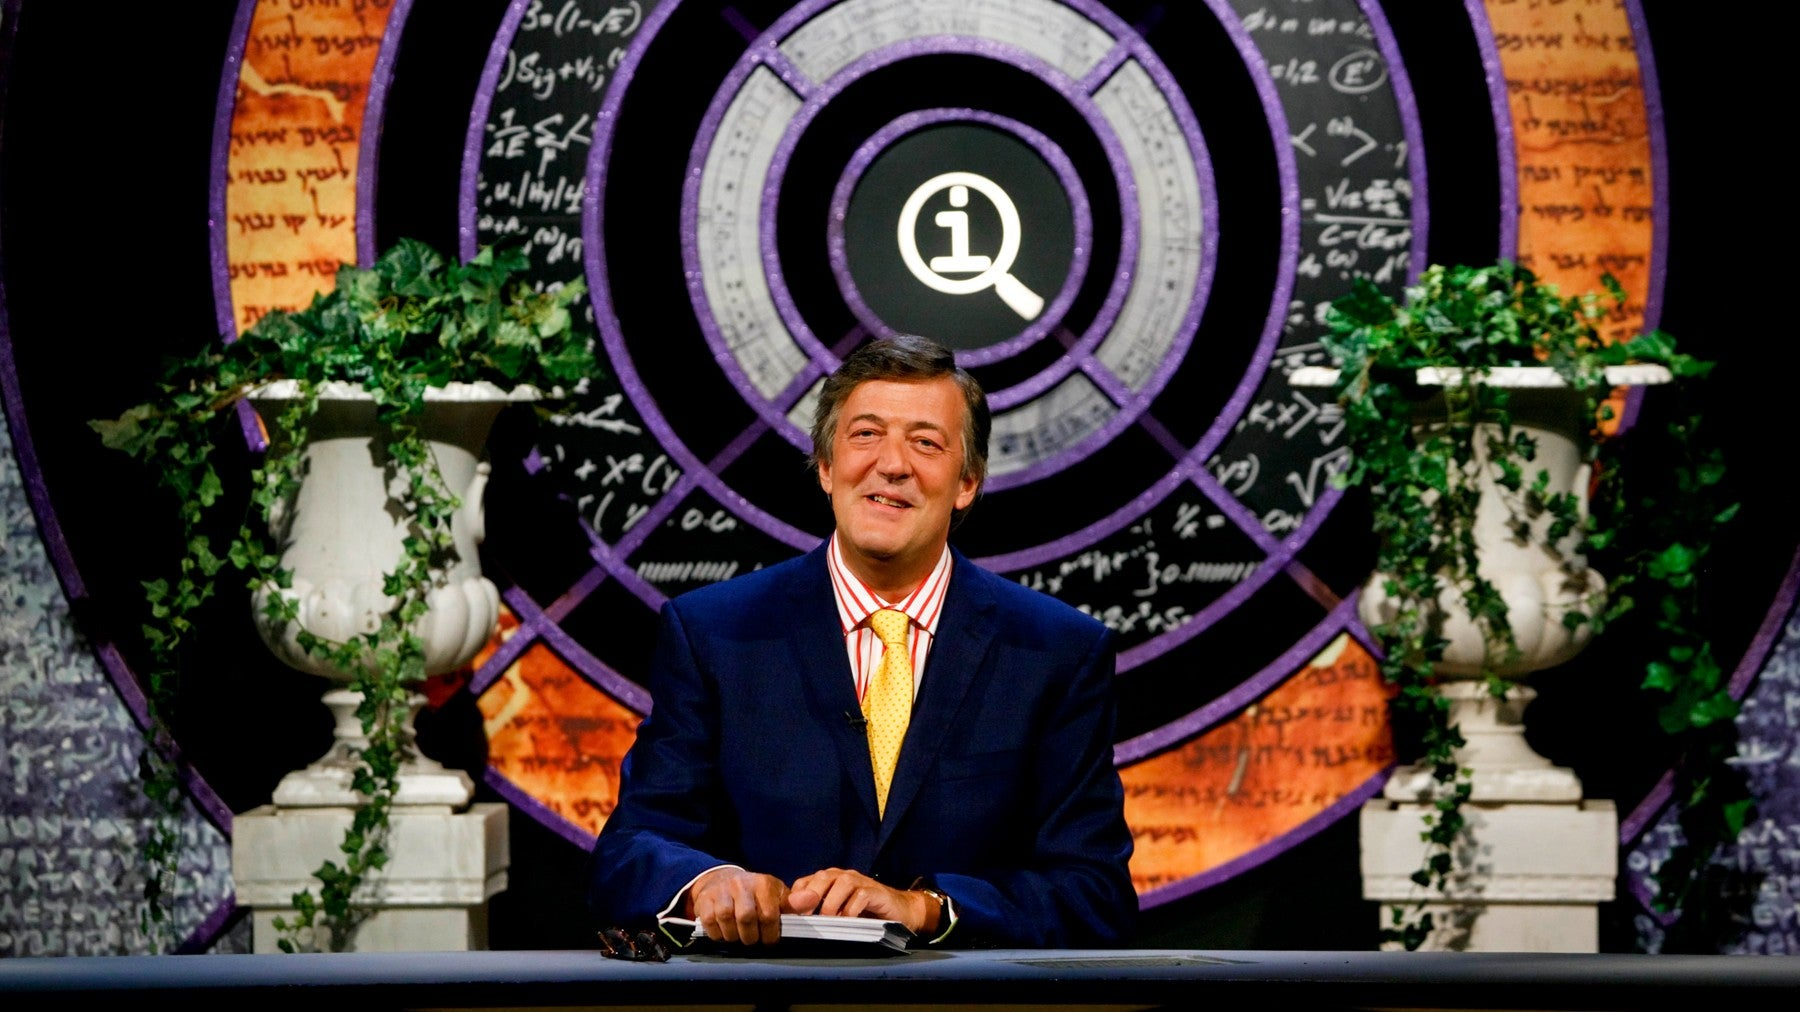 Stephen Fry quits QI: Sandi Toksvig to take over as host on BBC2